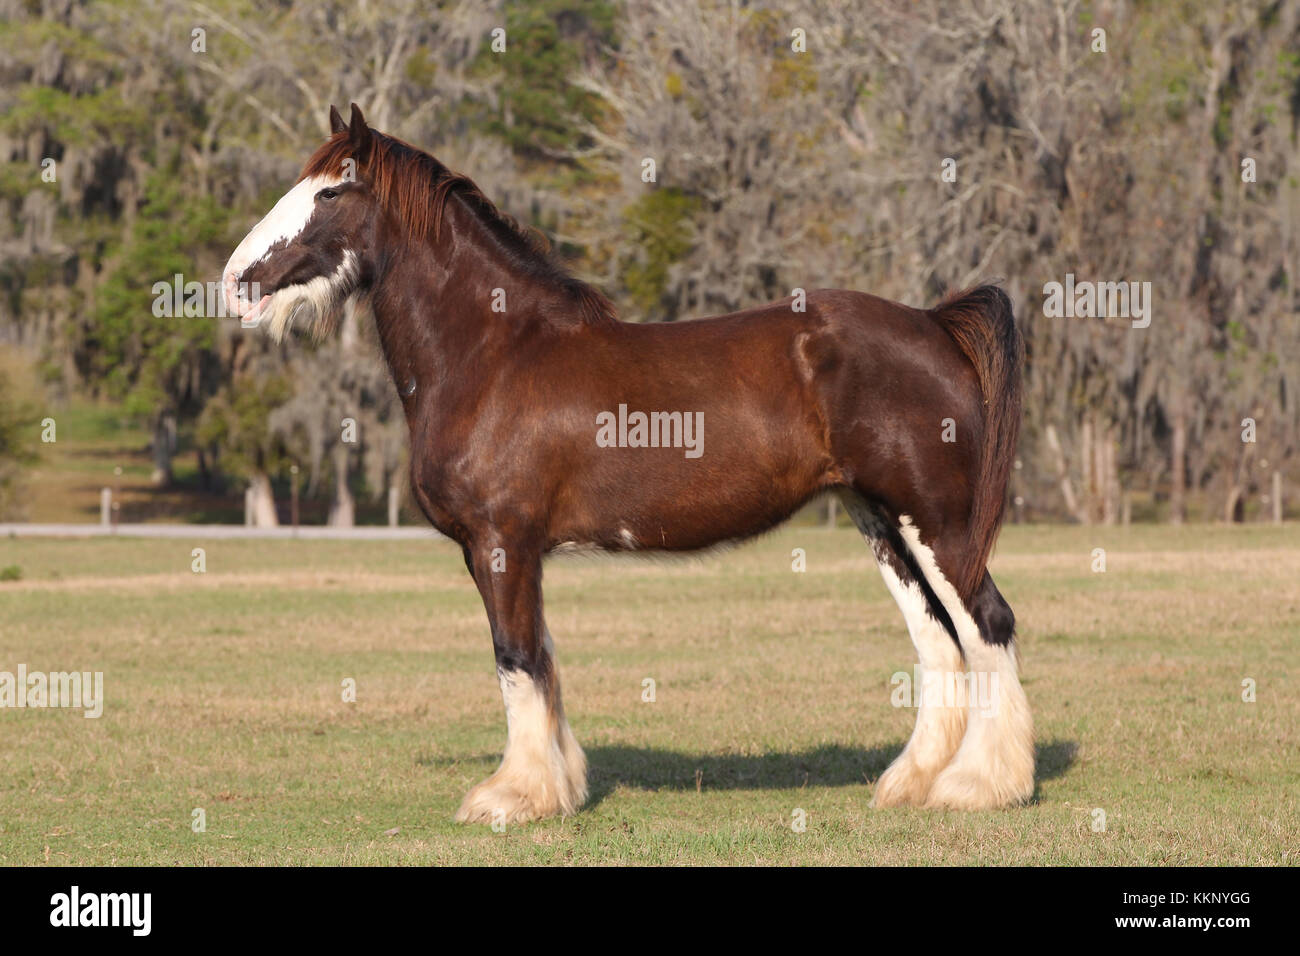 Clydesdale Horse High Resolution Stock Photography And Images Alamy